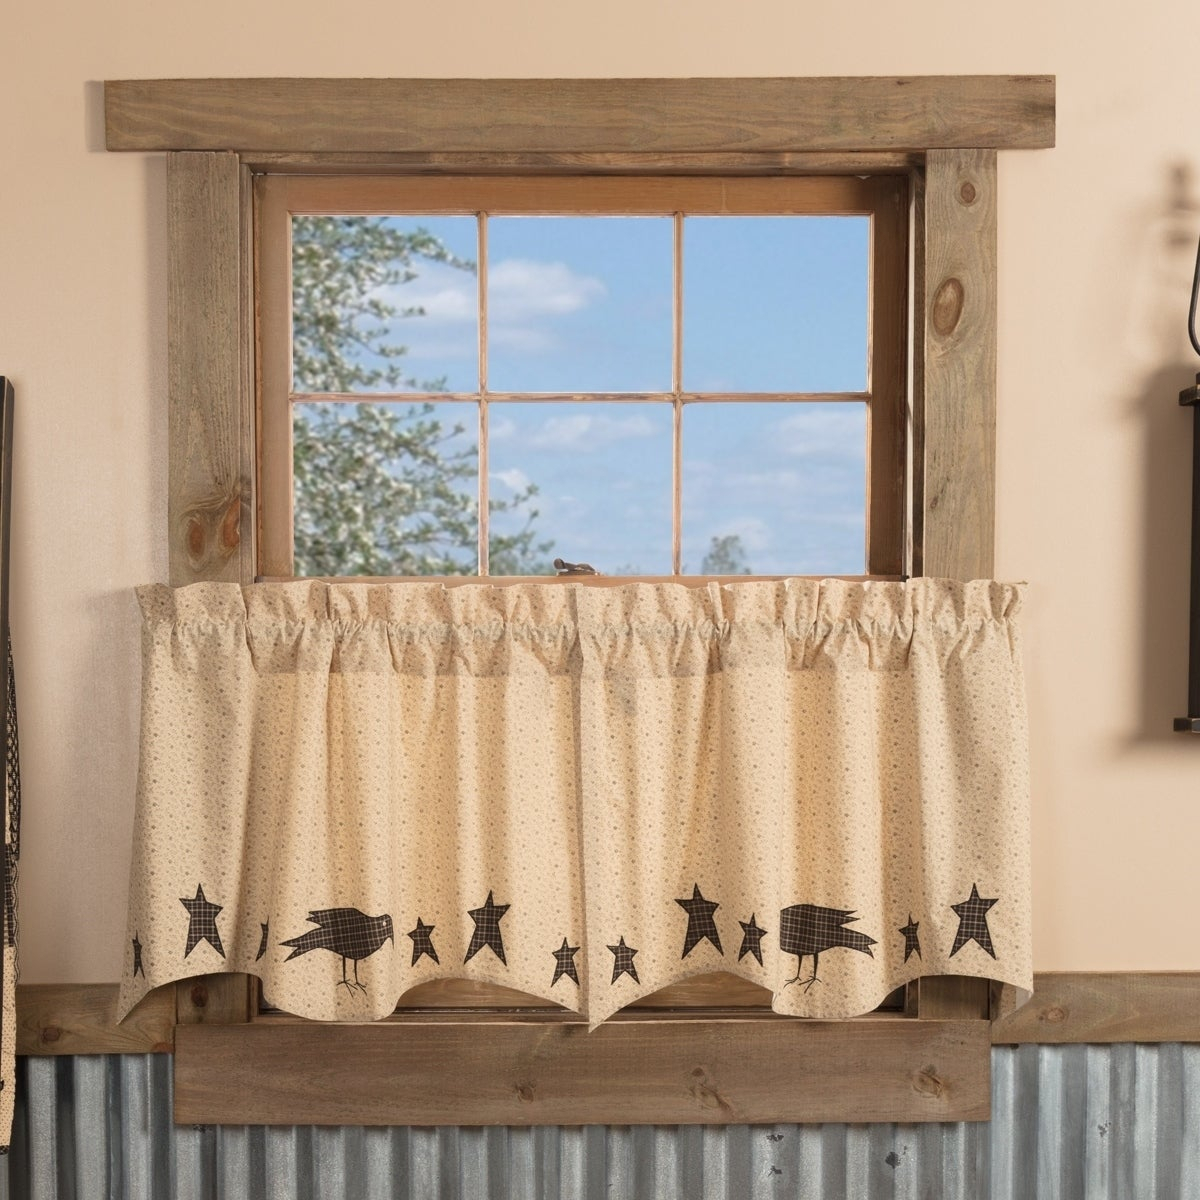 Tan Primitive Kitchen Curtains Vhc Kettle Grove Crow And Star Tier Pair Rod Pocket Cotton Star Appliqued Throughout Primitive Kitchen Curtains (View 12 of 20)